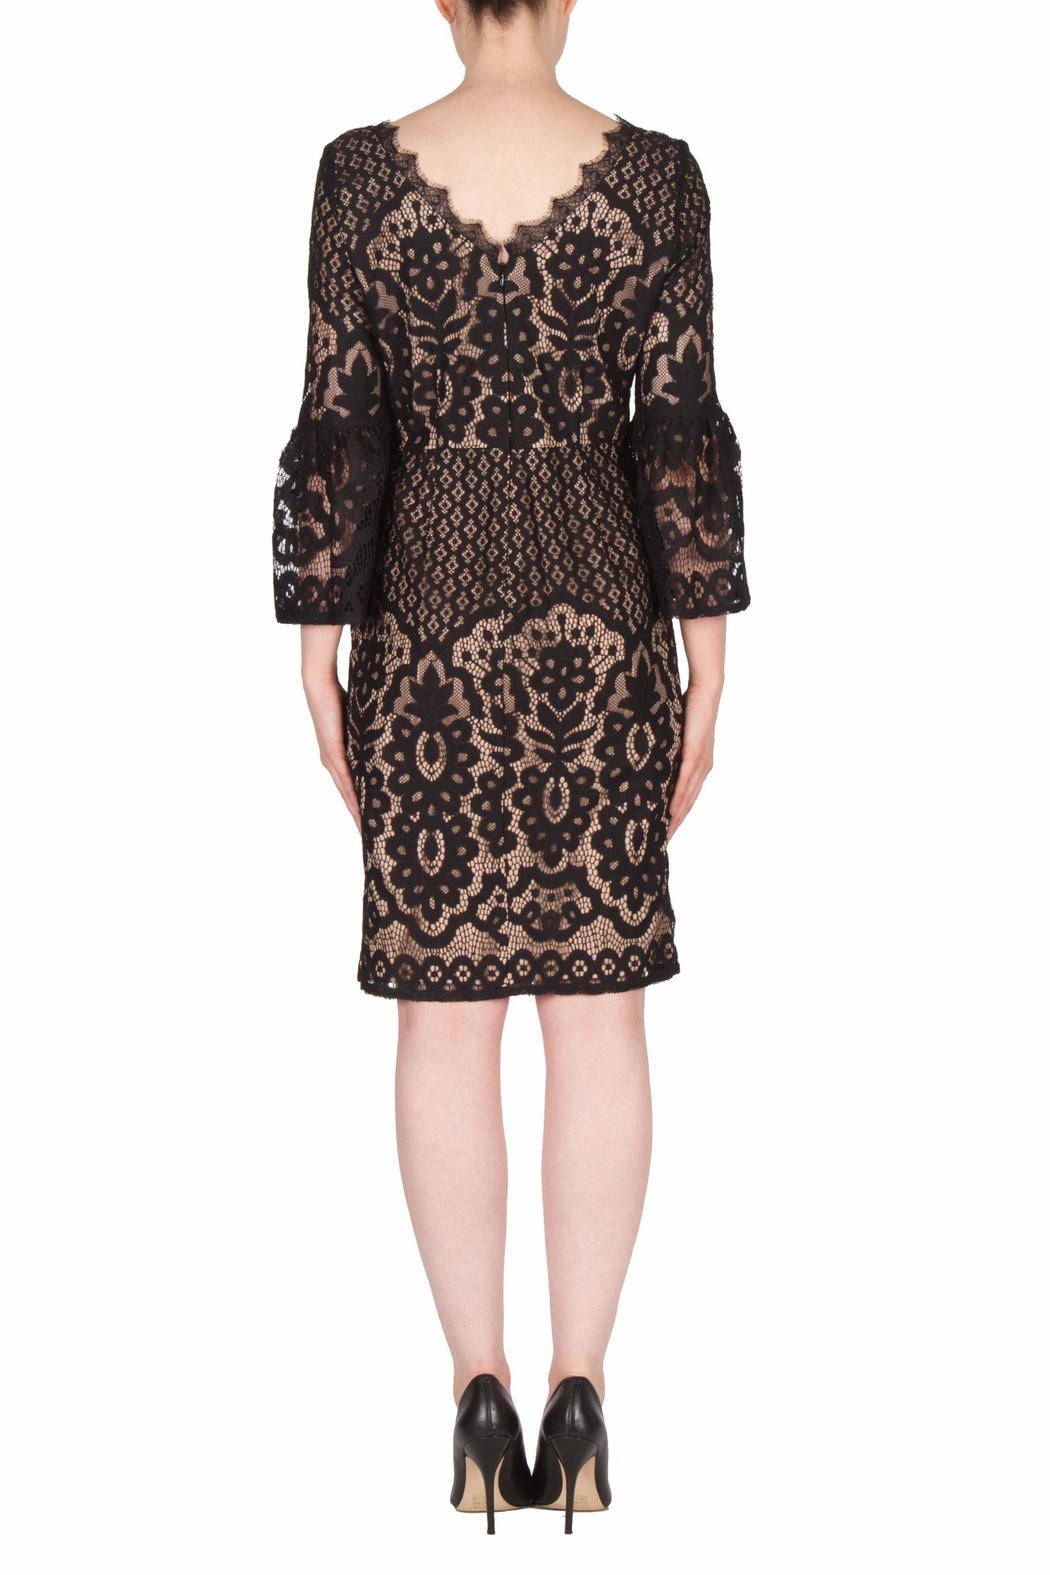 Joseph Ribkoff Black Lace Dress - Side Cropped Image